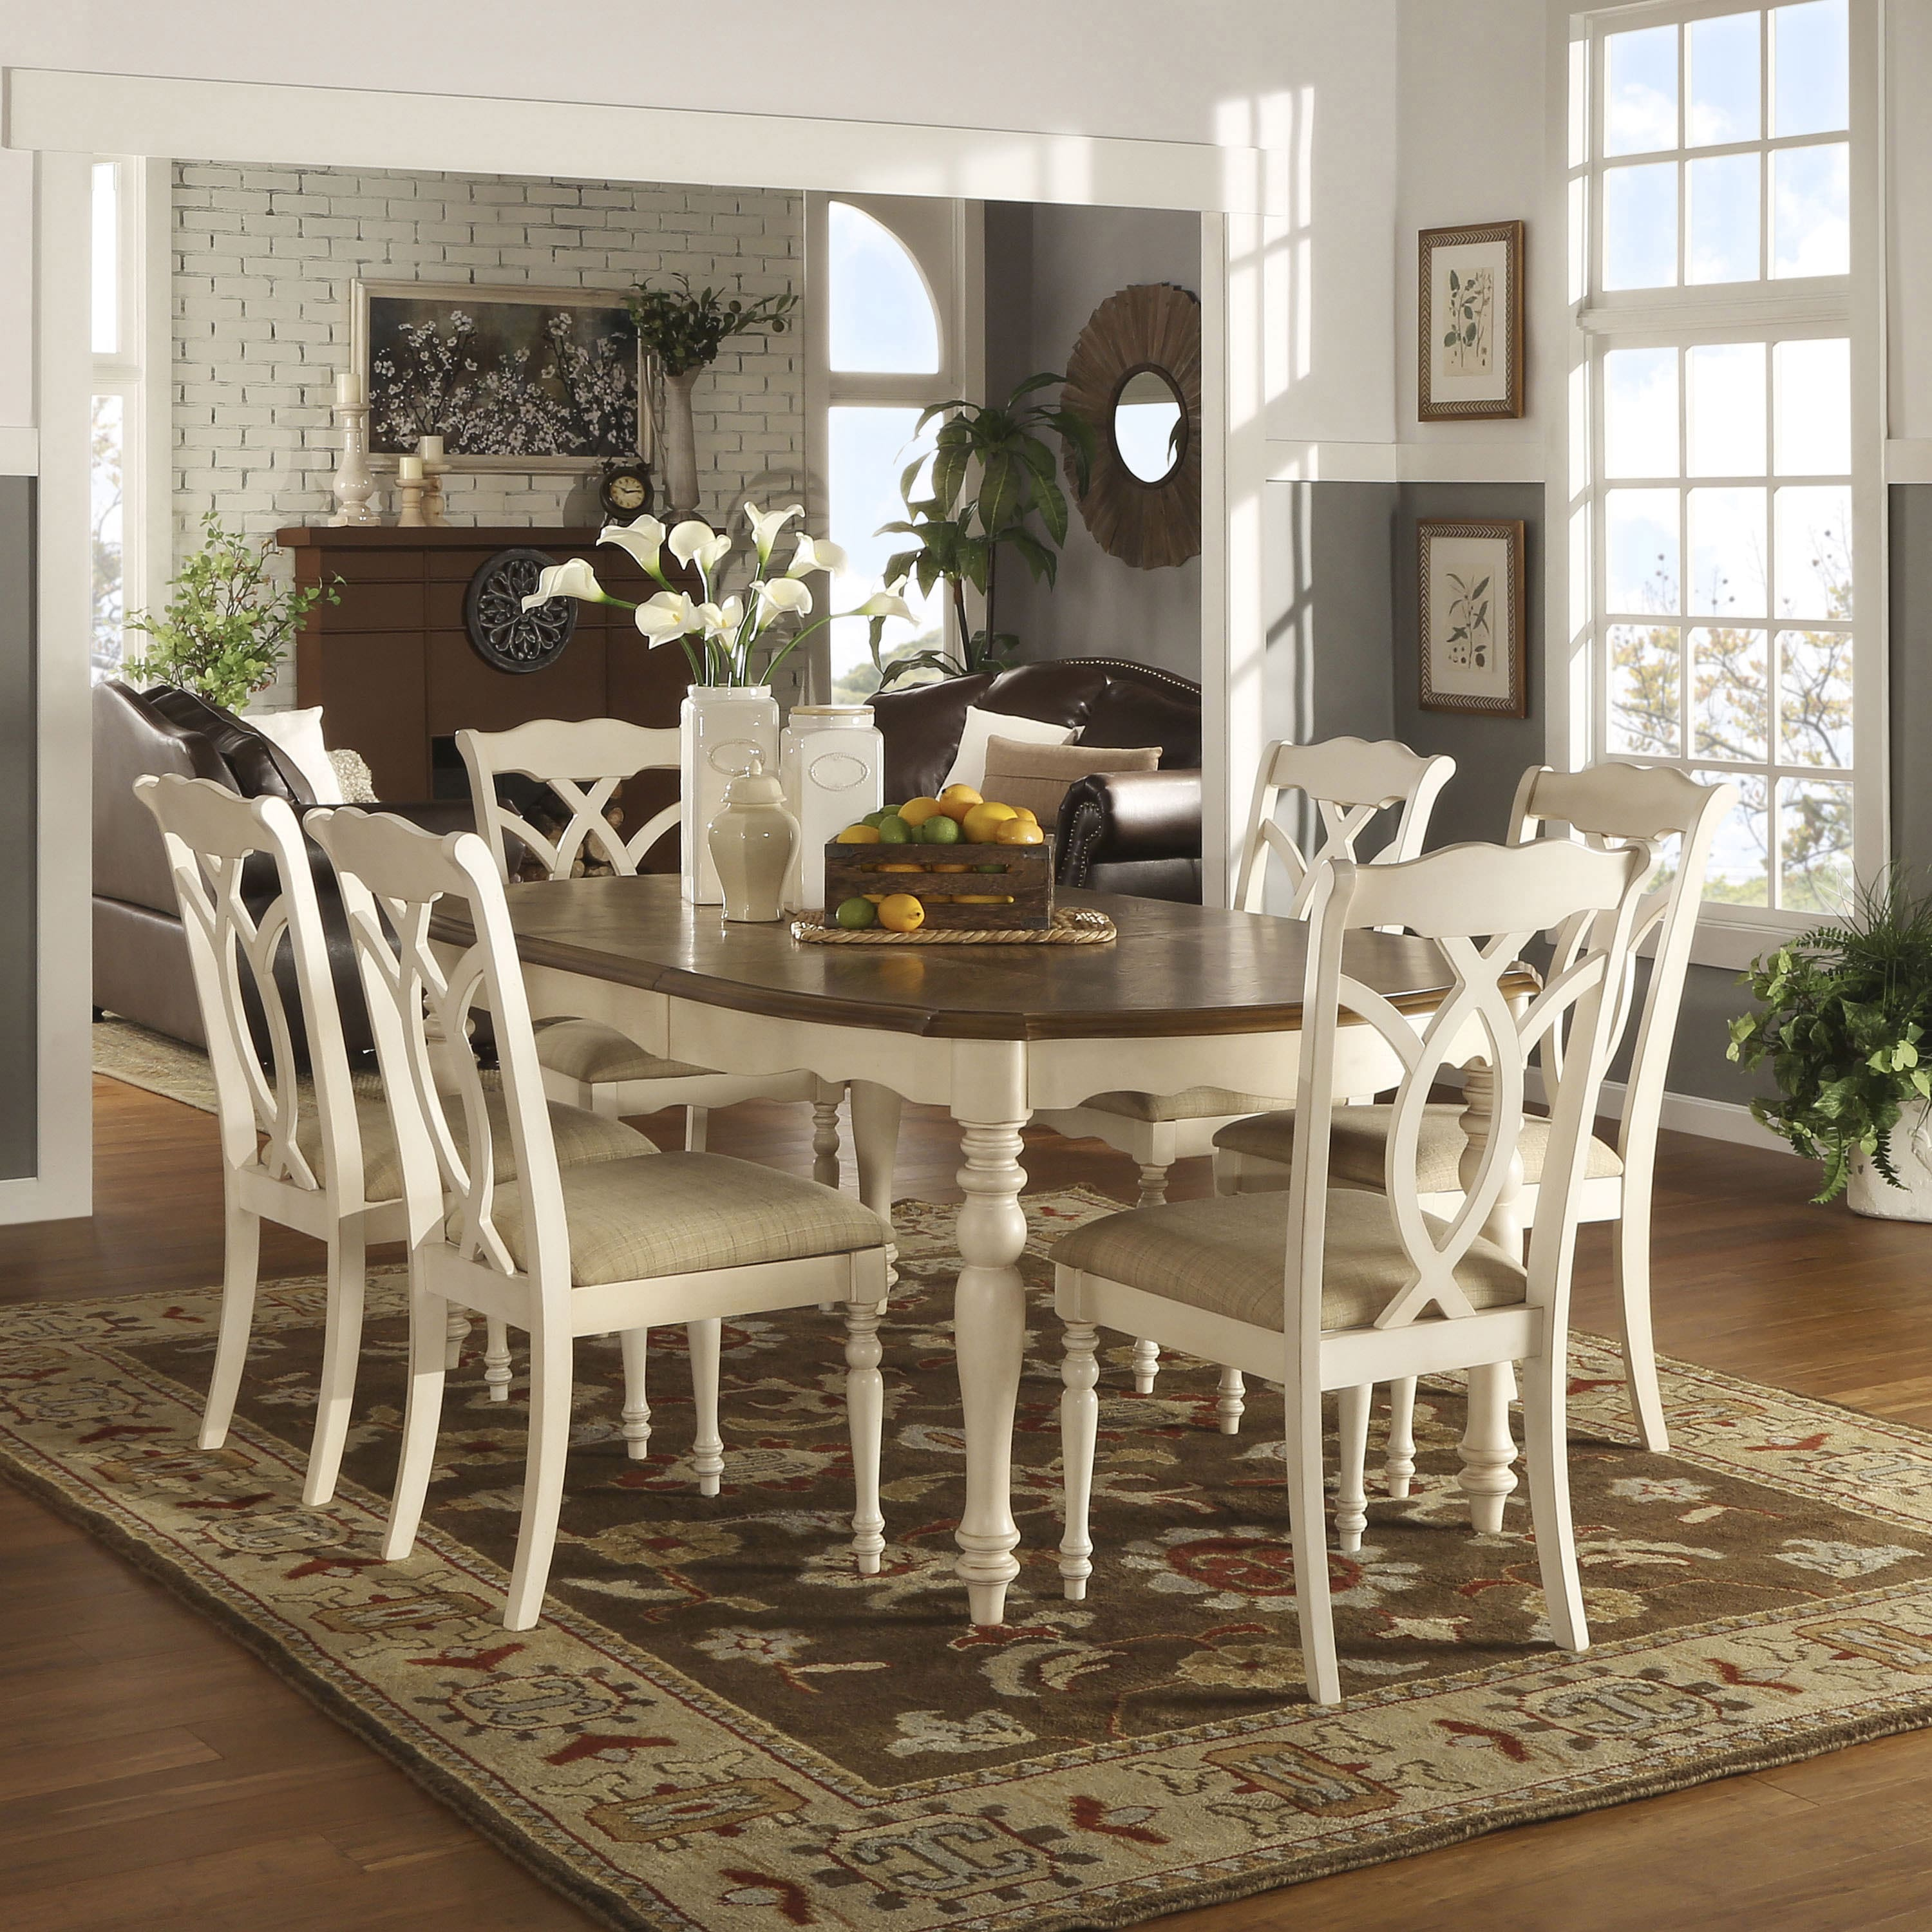 Country Kitchen Table And Chairs: Buy Kitchen & Dining Room Sets Online At Overstock